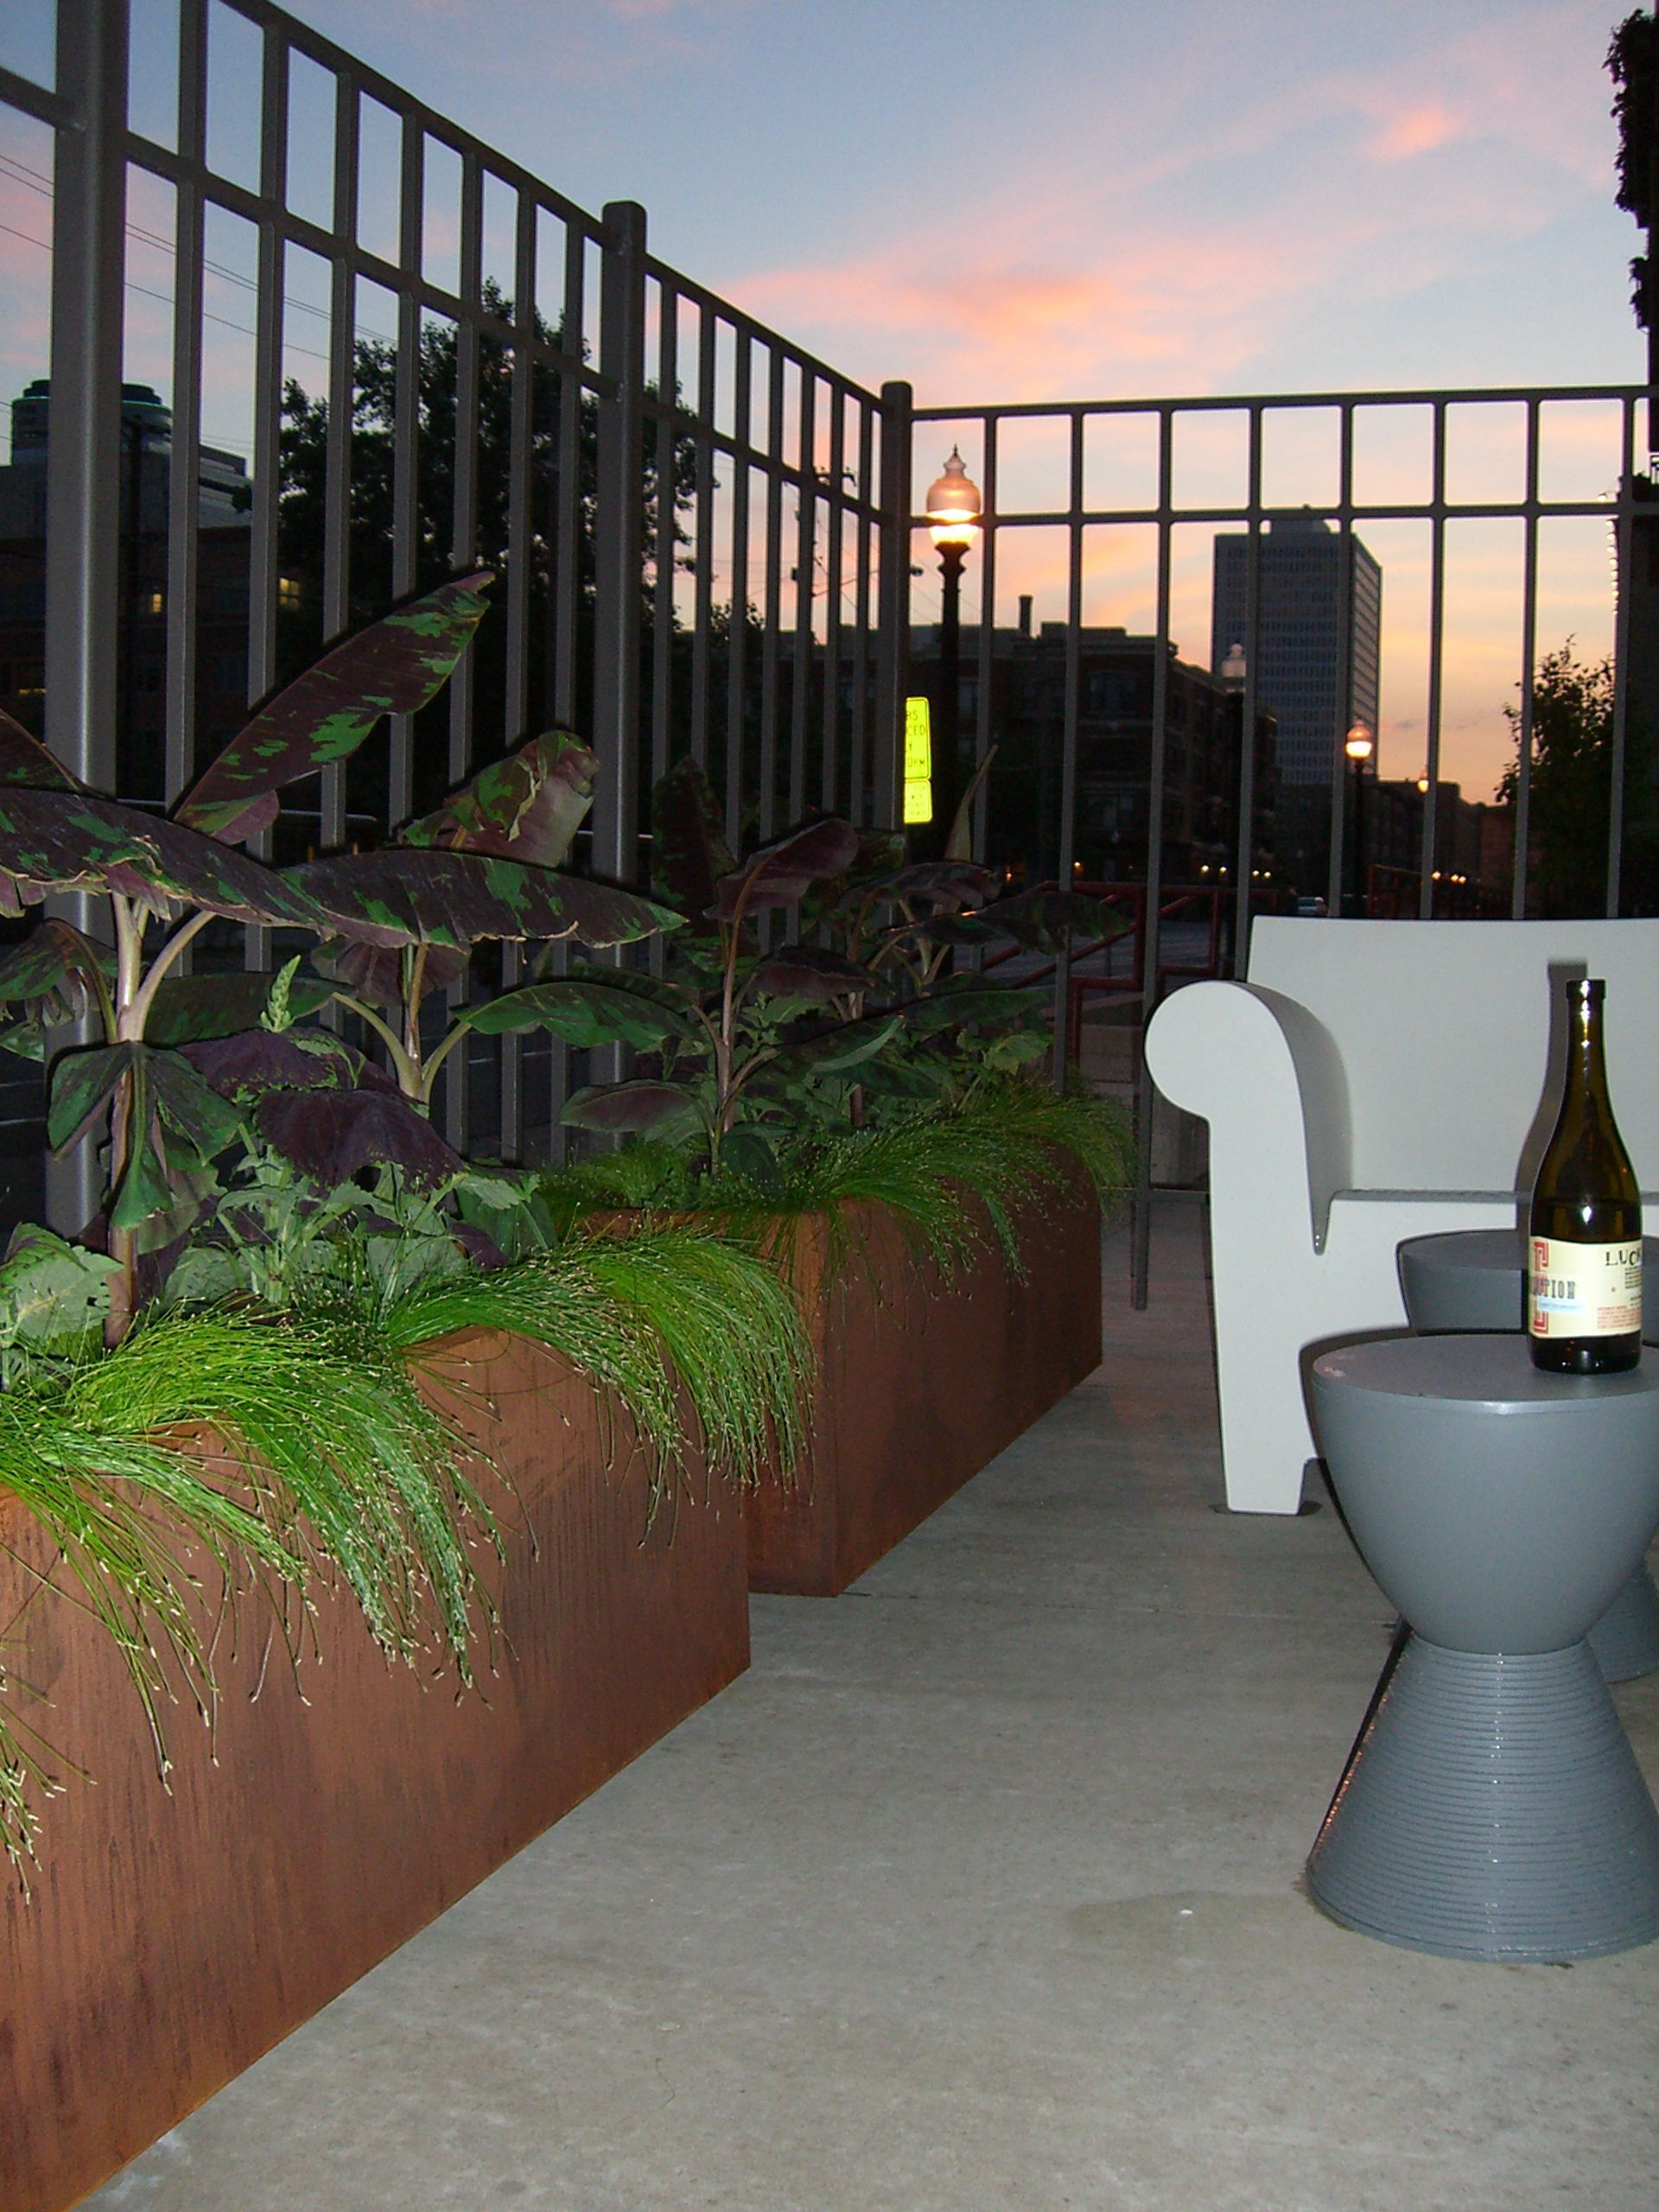 Downtown Minneapolis Sunset with Fresh Plantings